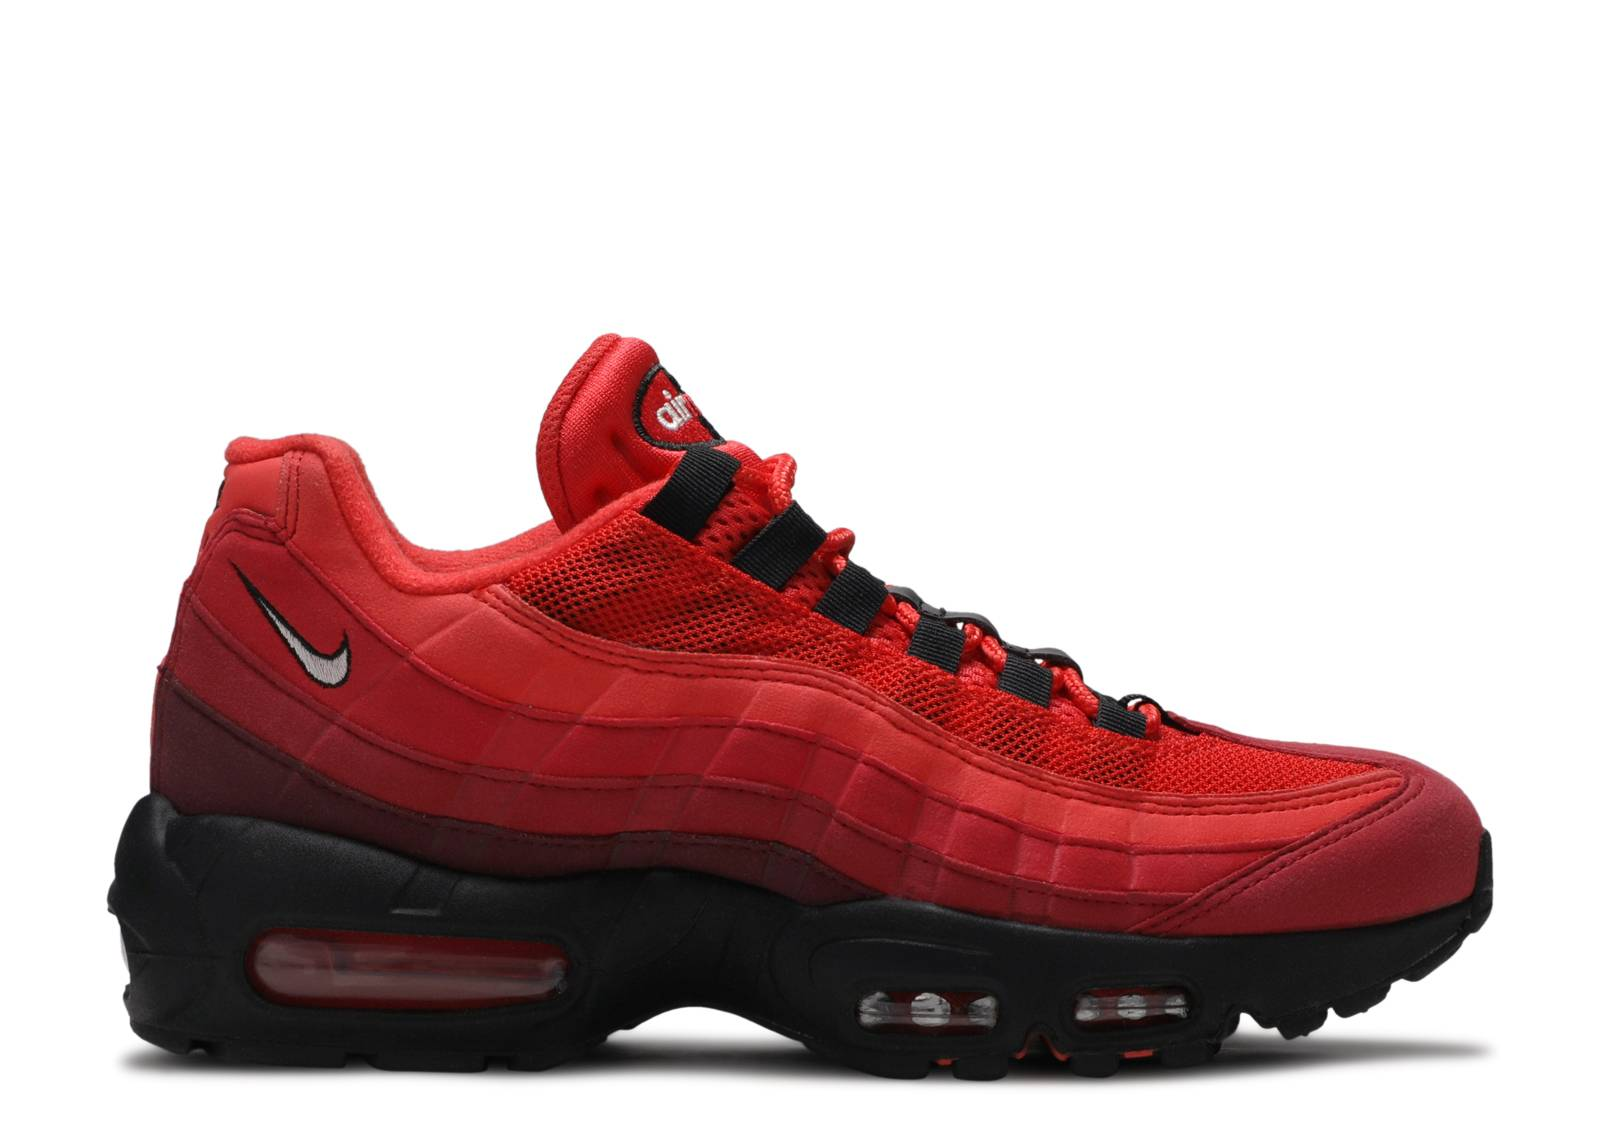 save off 1642b 909bd Nike Air Max 95 - Men's & Women's Shoes | Flight Club